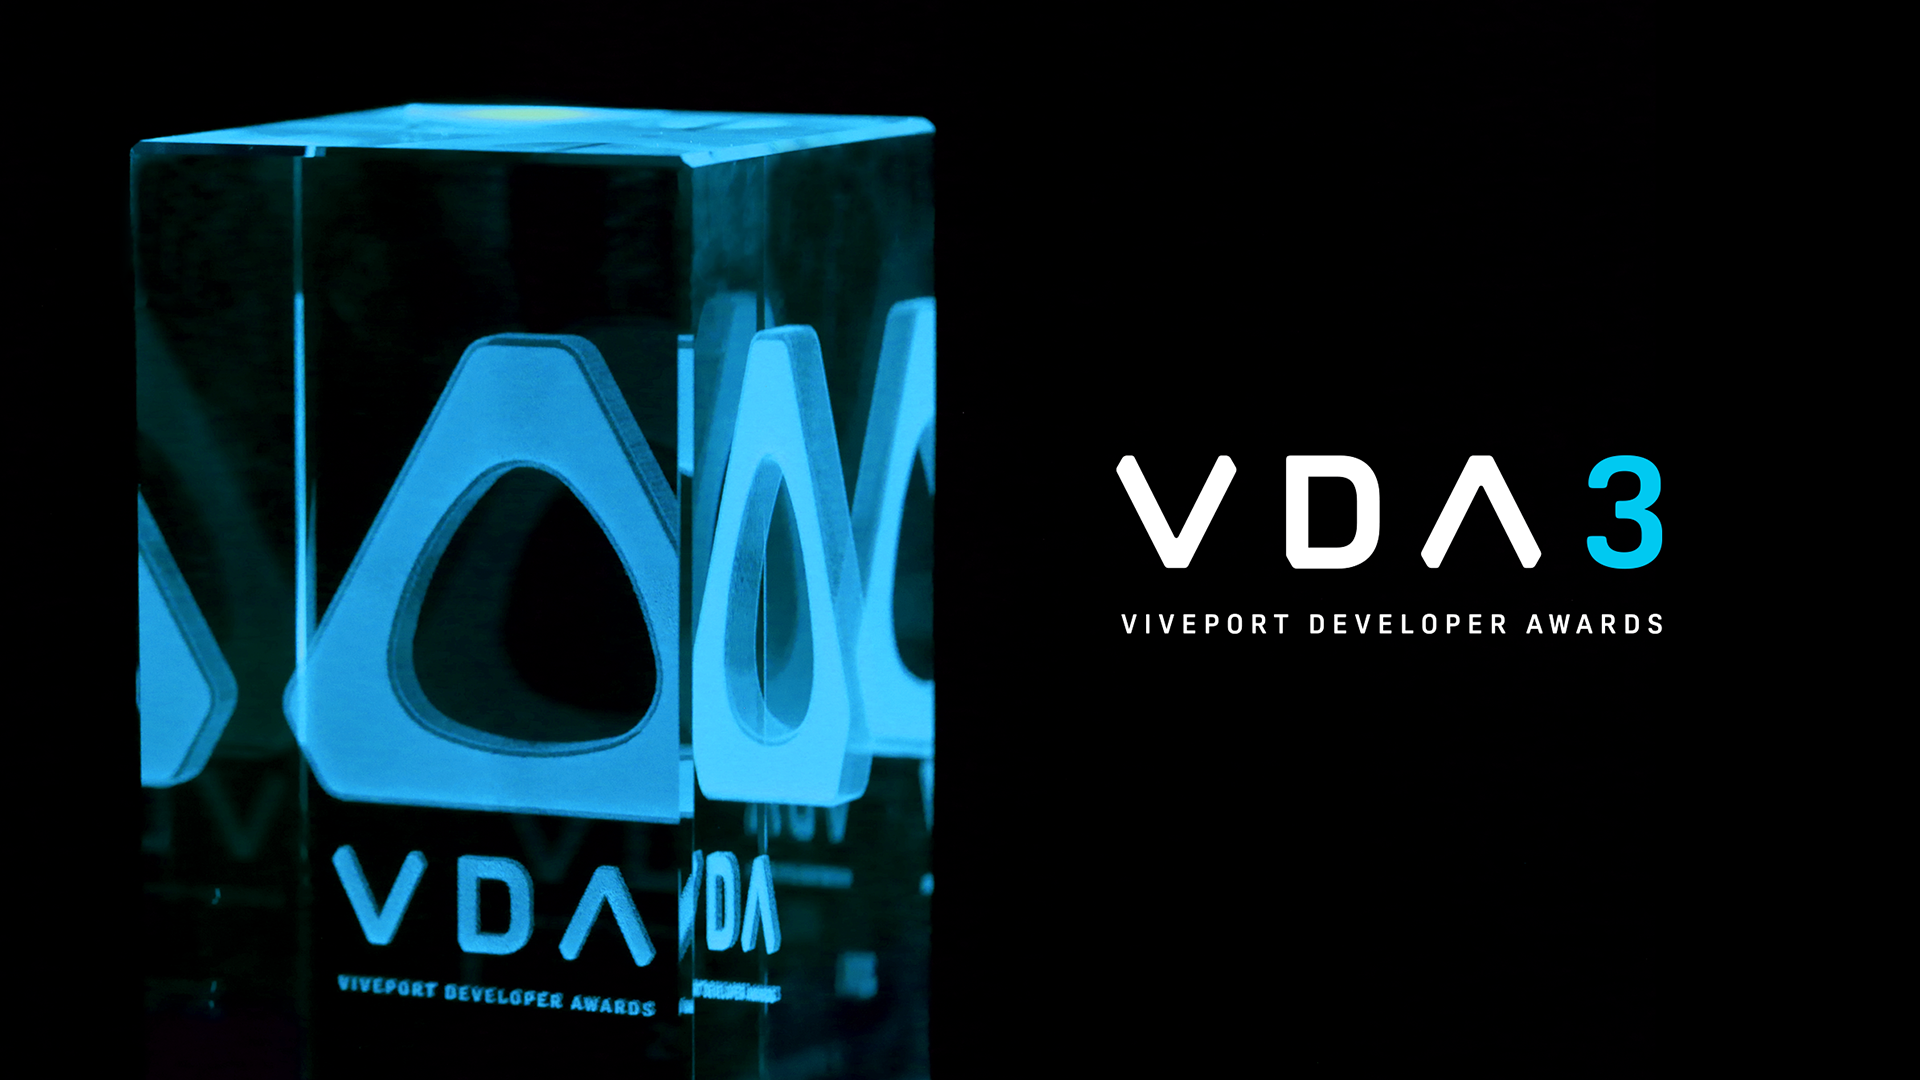 6b5aabe299b The awards program is an open contest for VR developers who have titles  published in Viveport Subscription. Viveport announced the winners ...